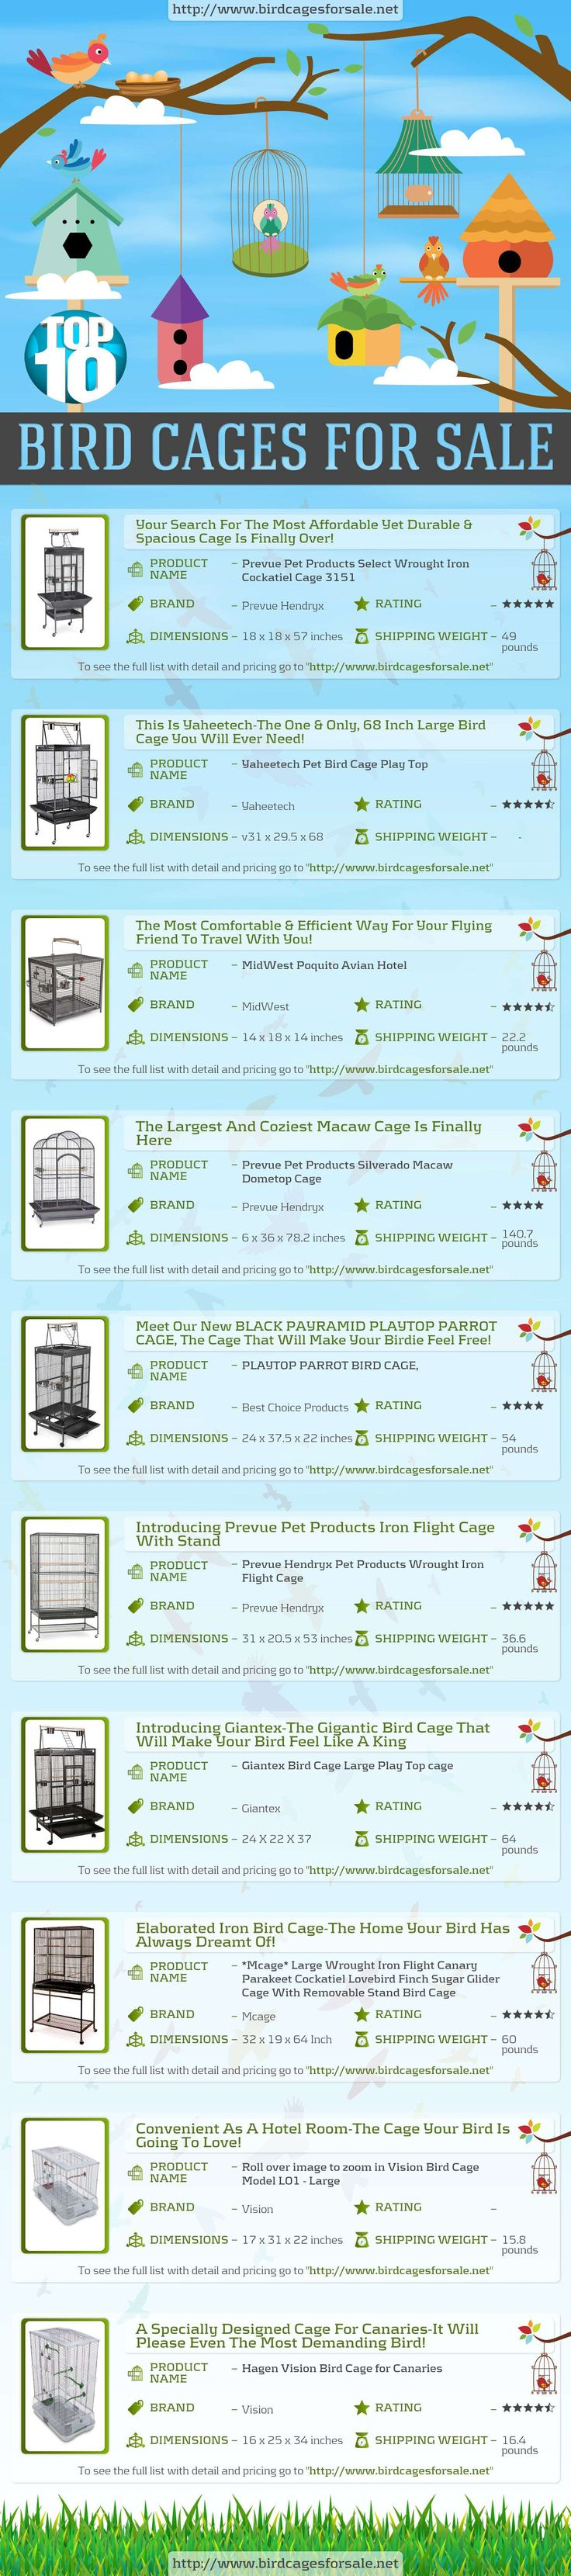 http://www.birdcagesforsale.net/ Find the best bird cages for sale. large bird cage, small bird cage, bird aviary, bird cage with stand , Parrot Cage, Parakeet Cage, cockatiel cage, Macaw Cage,Canary Cage, Finch Cage and more.